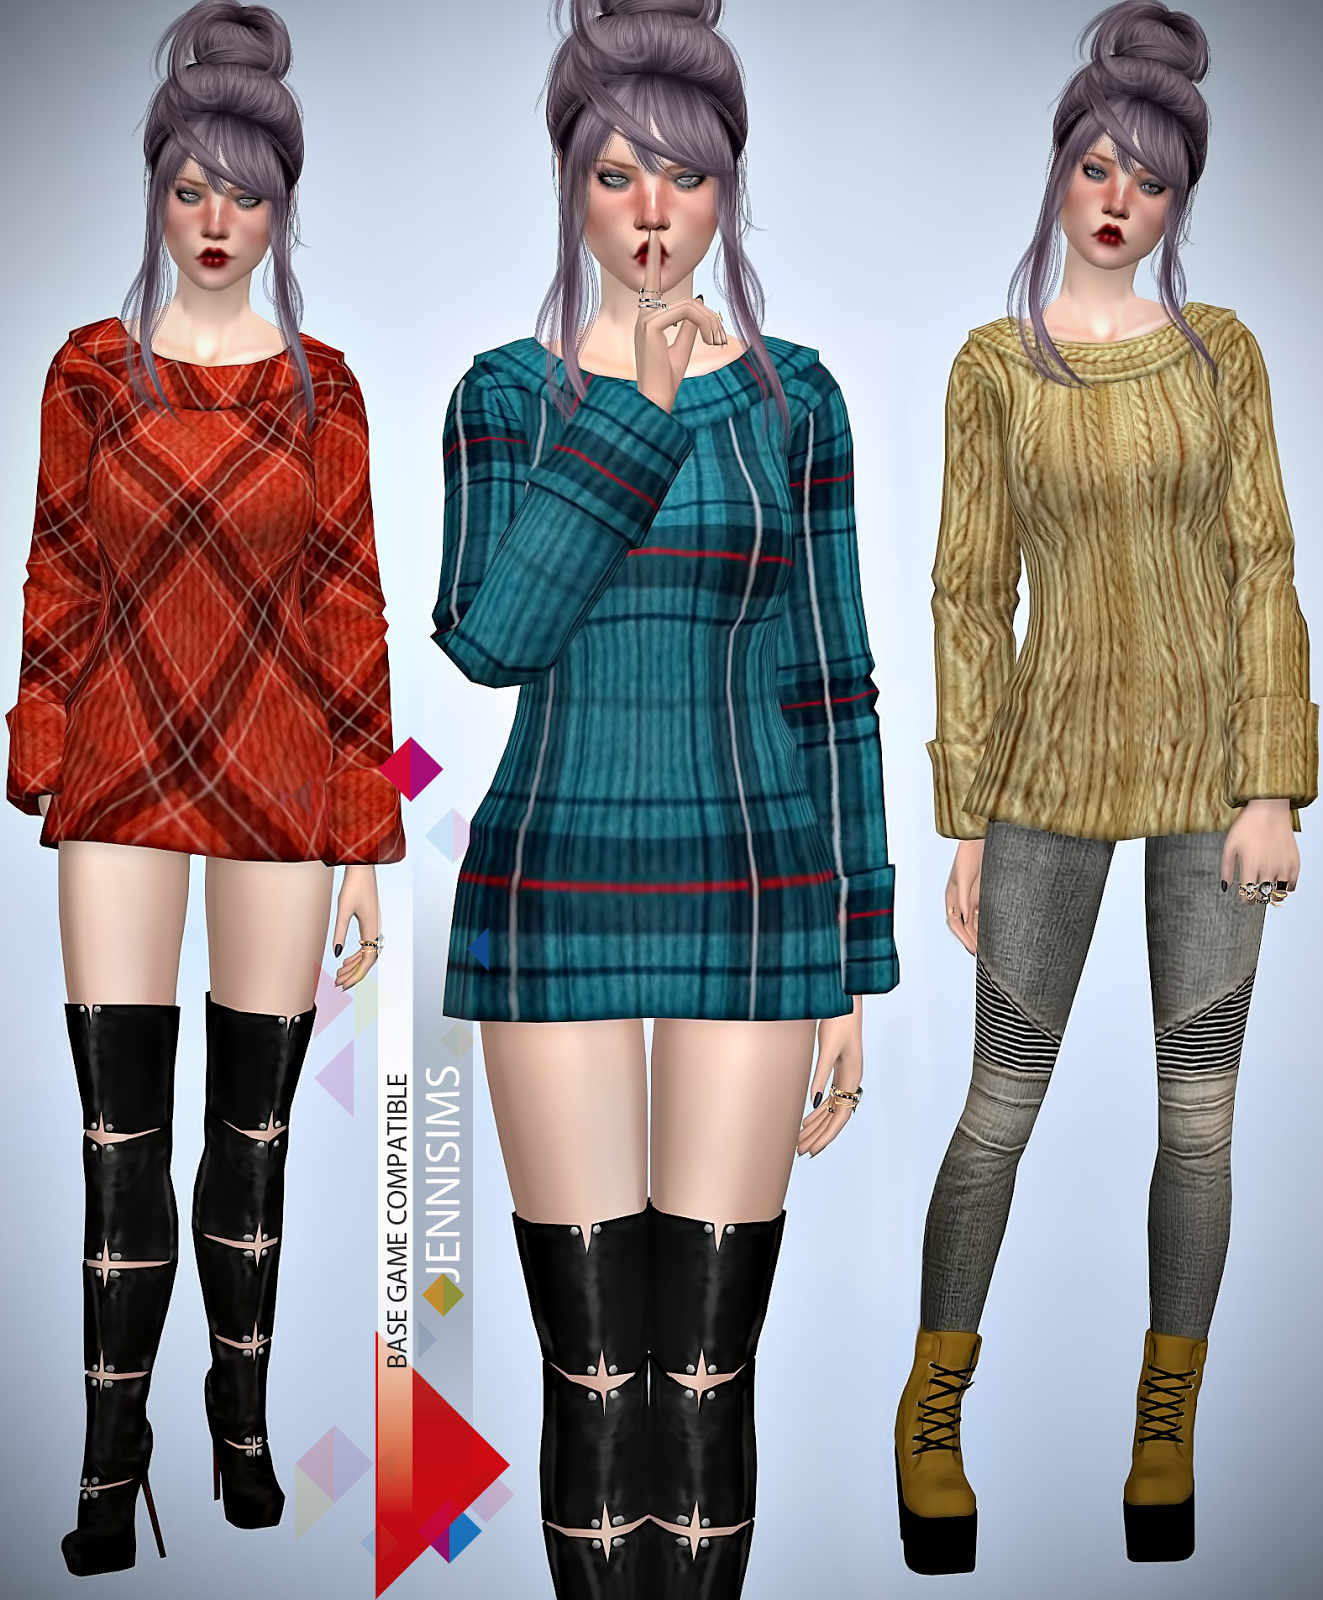 Mod The Sims - Punk Jacket - Grimmy Revamped! (YA/Adult